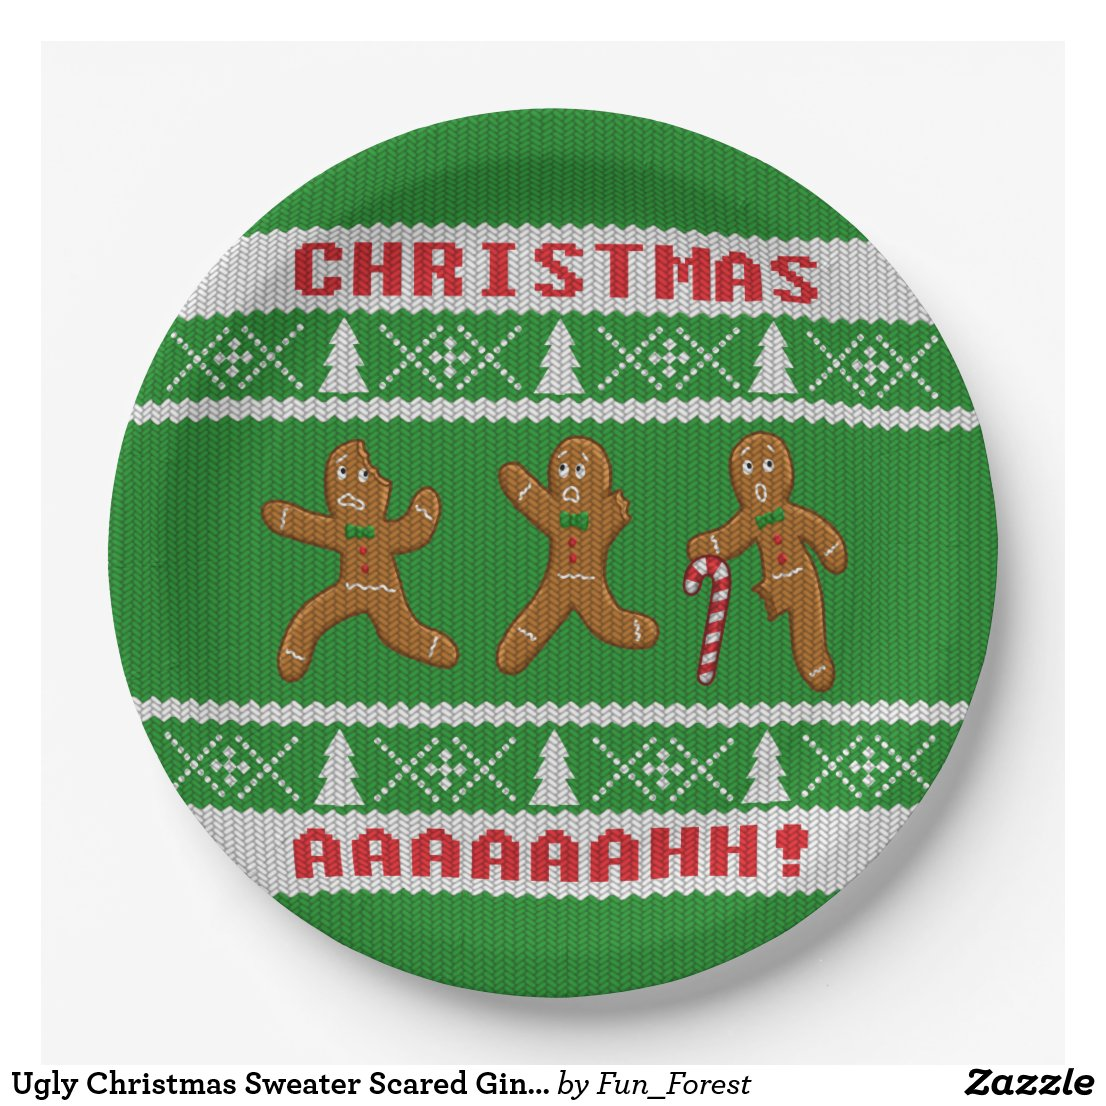 Ugly Christmas Sweater Scared Gingerbreadmen Green Paper Plate